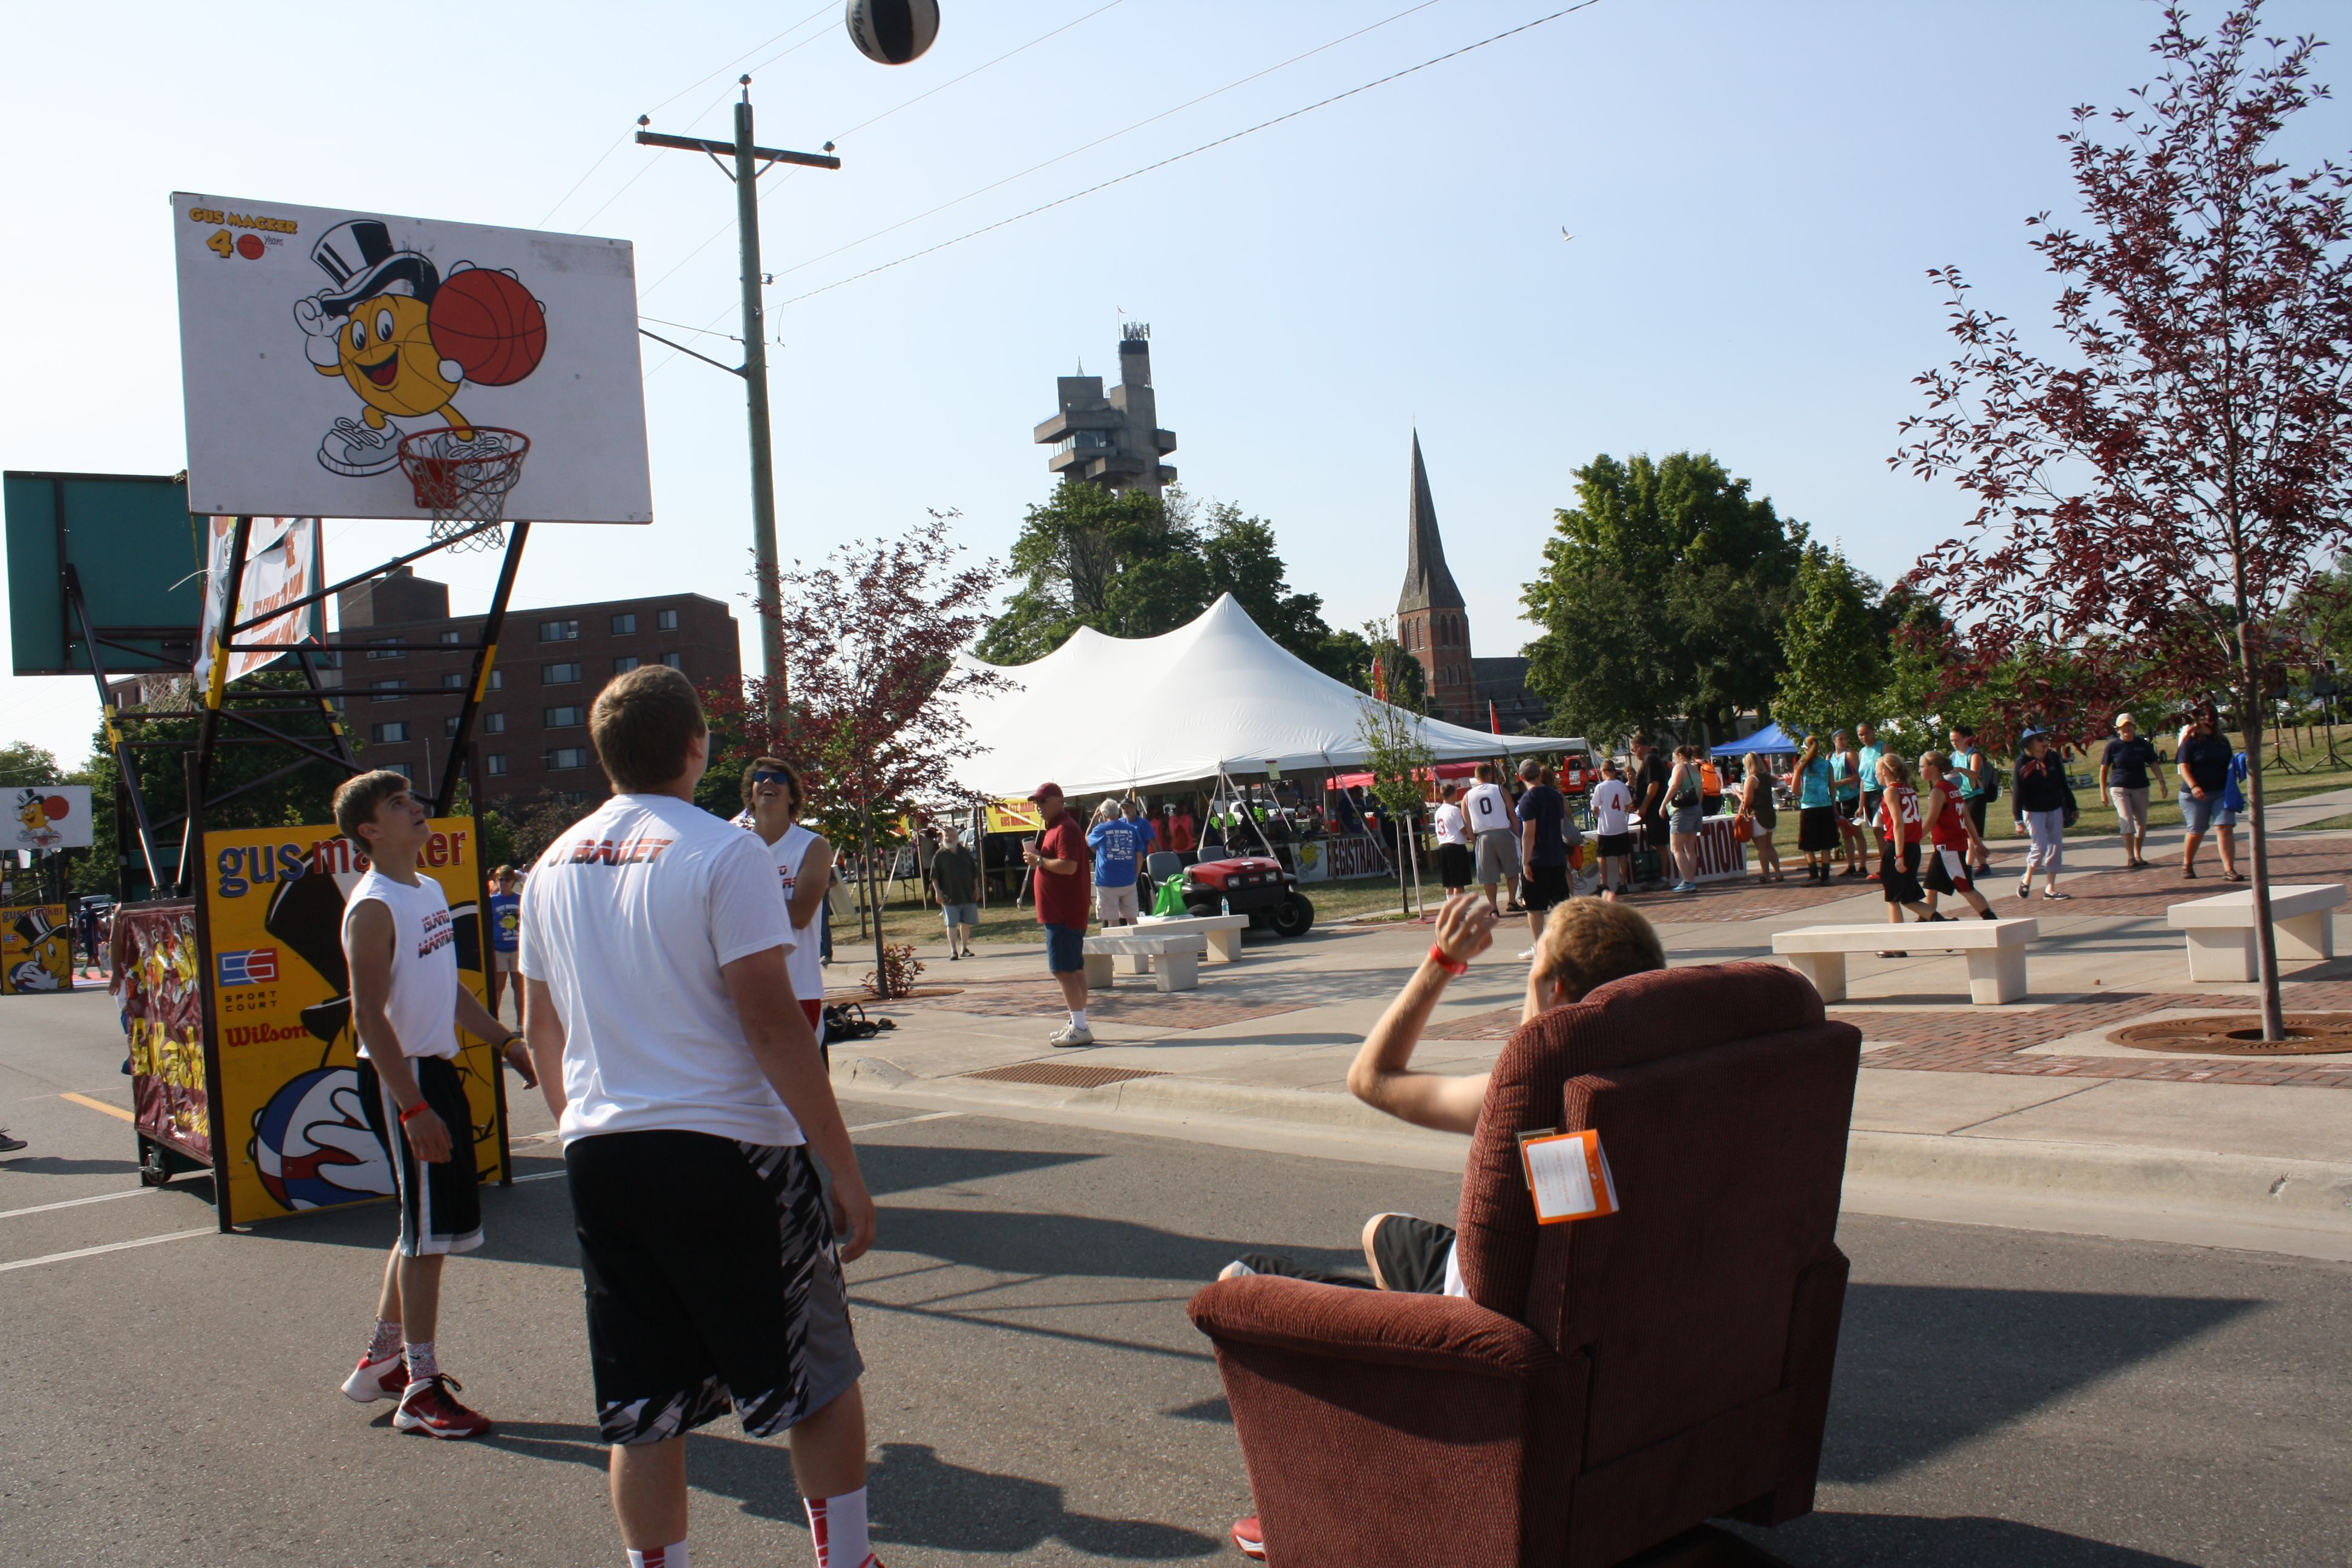 You wouldn't want to miss out on the special events while at the Gus Macker in Sault Ste. Marie, MI.